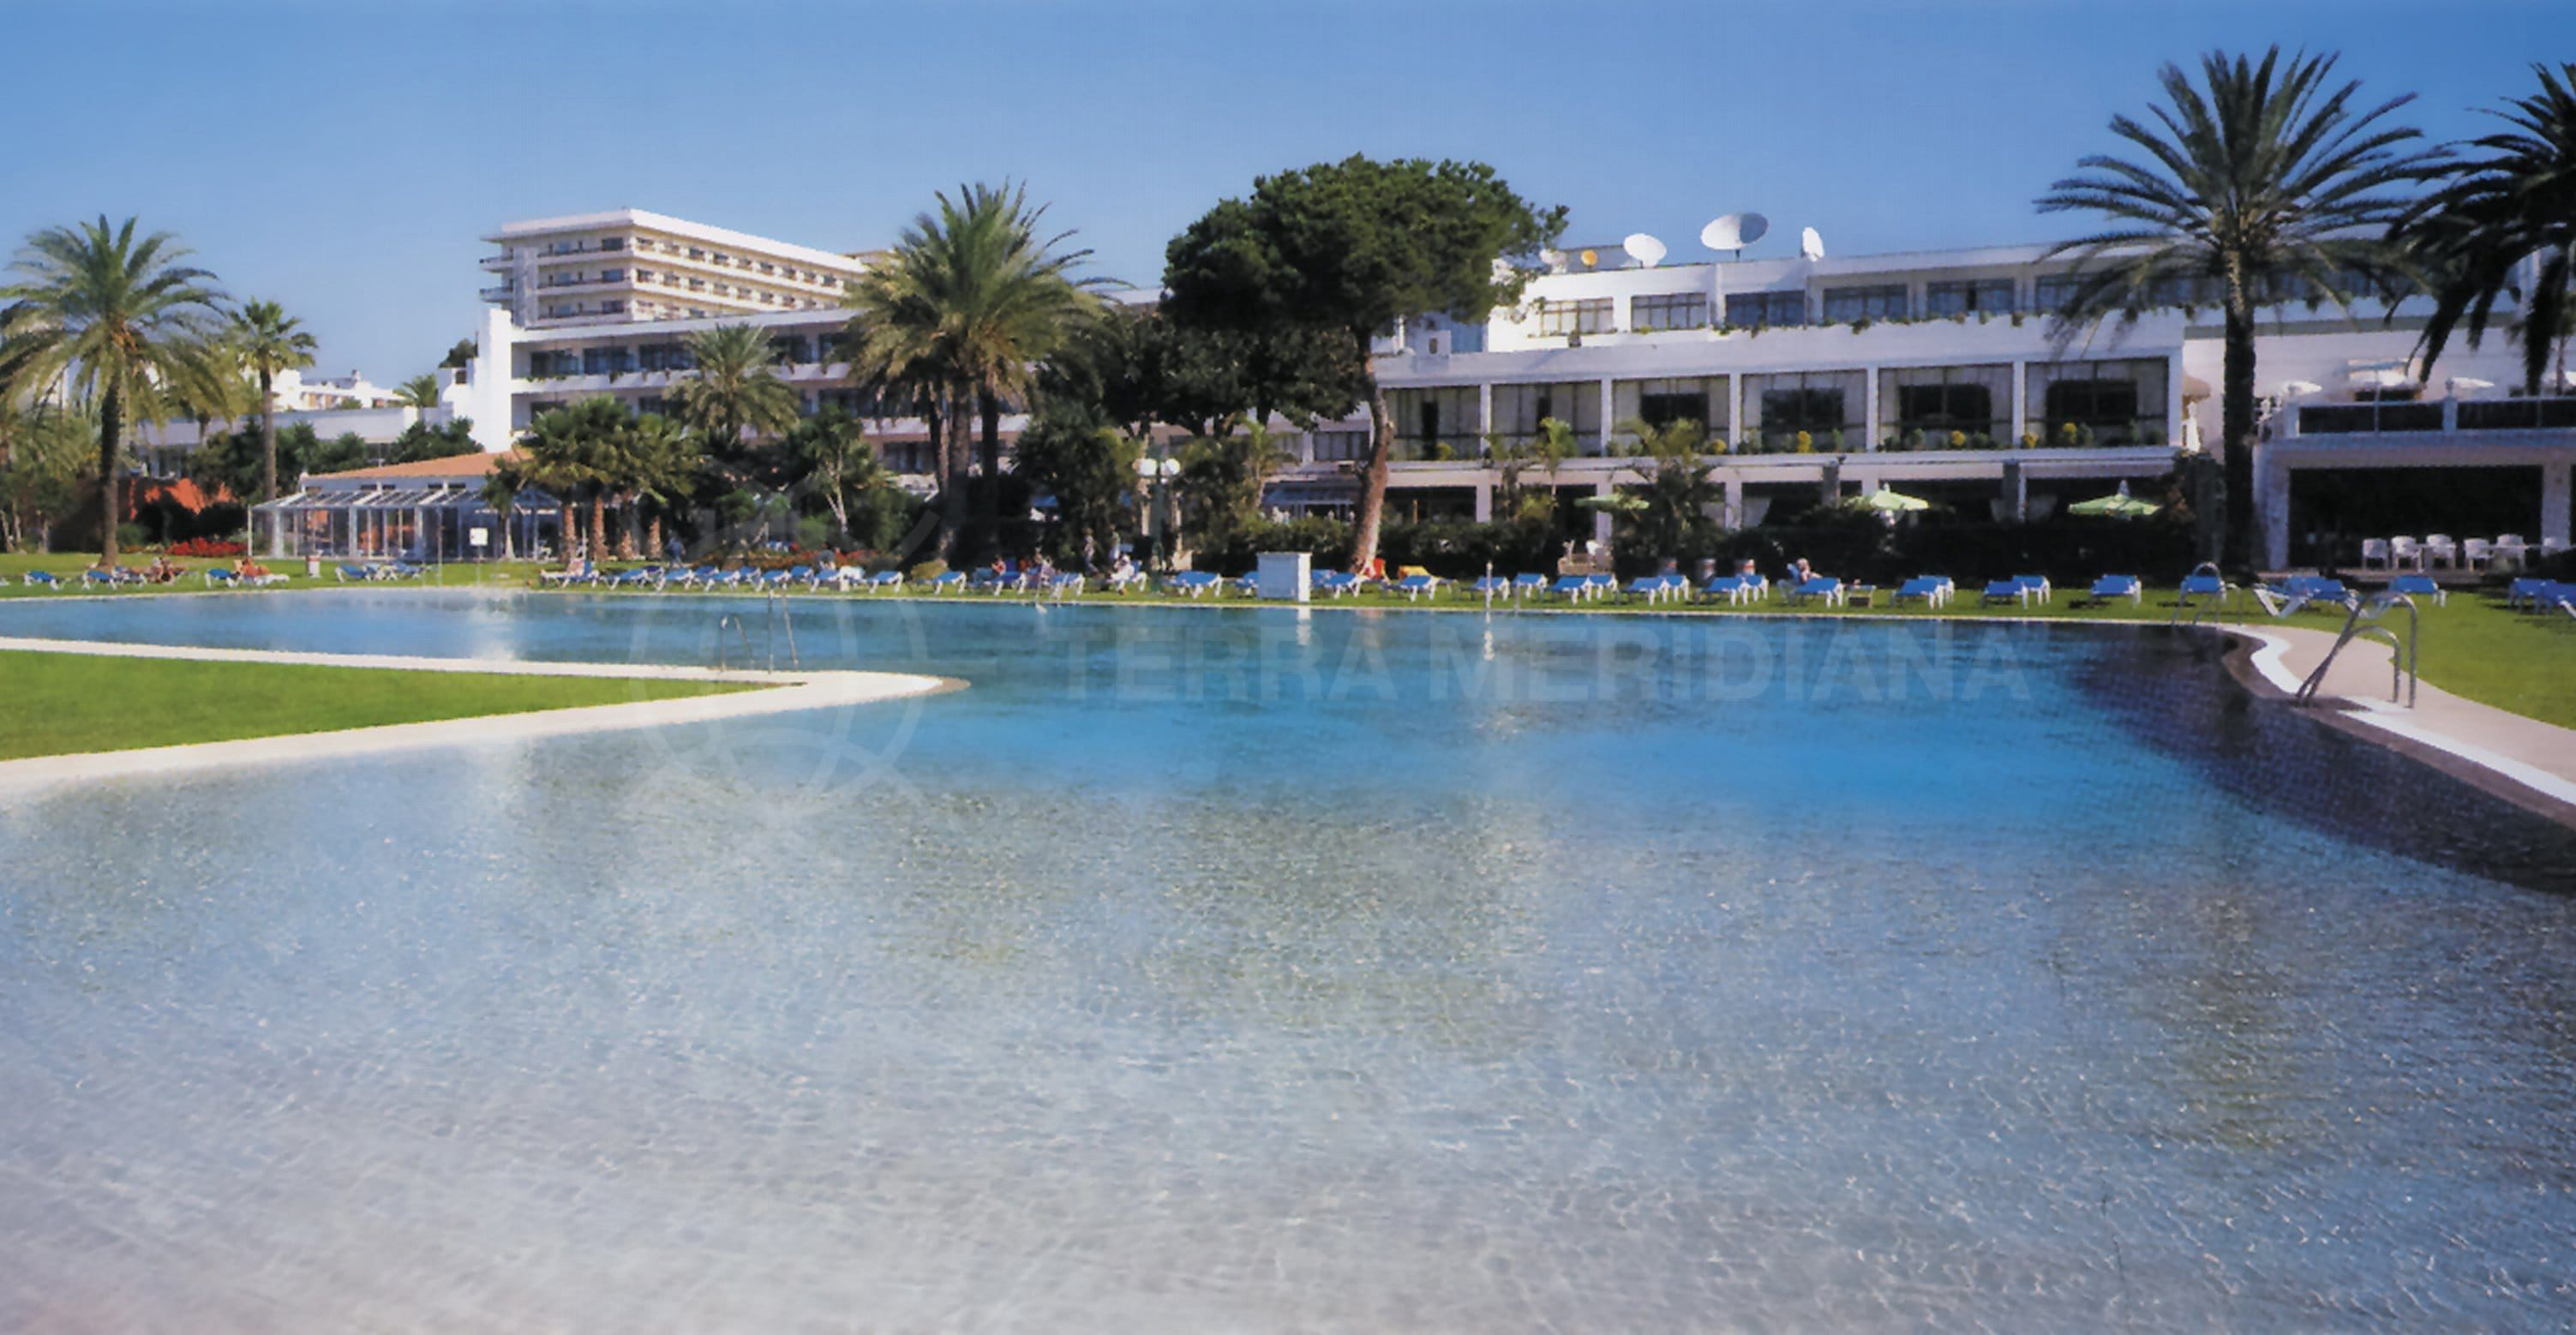 Meliá to take over management of Estepona's Atalaya Park hotel